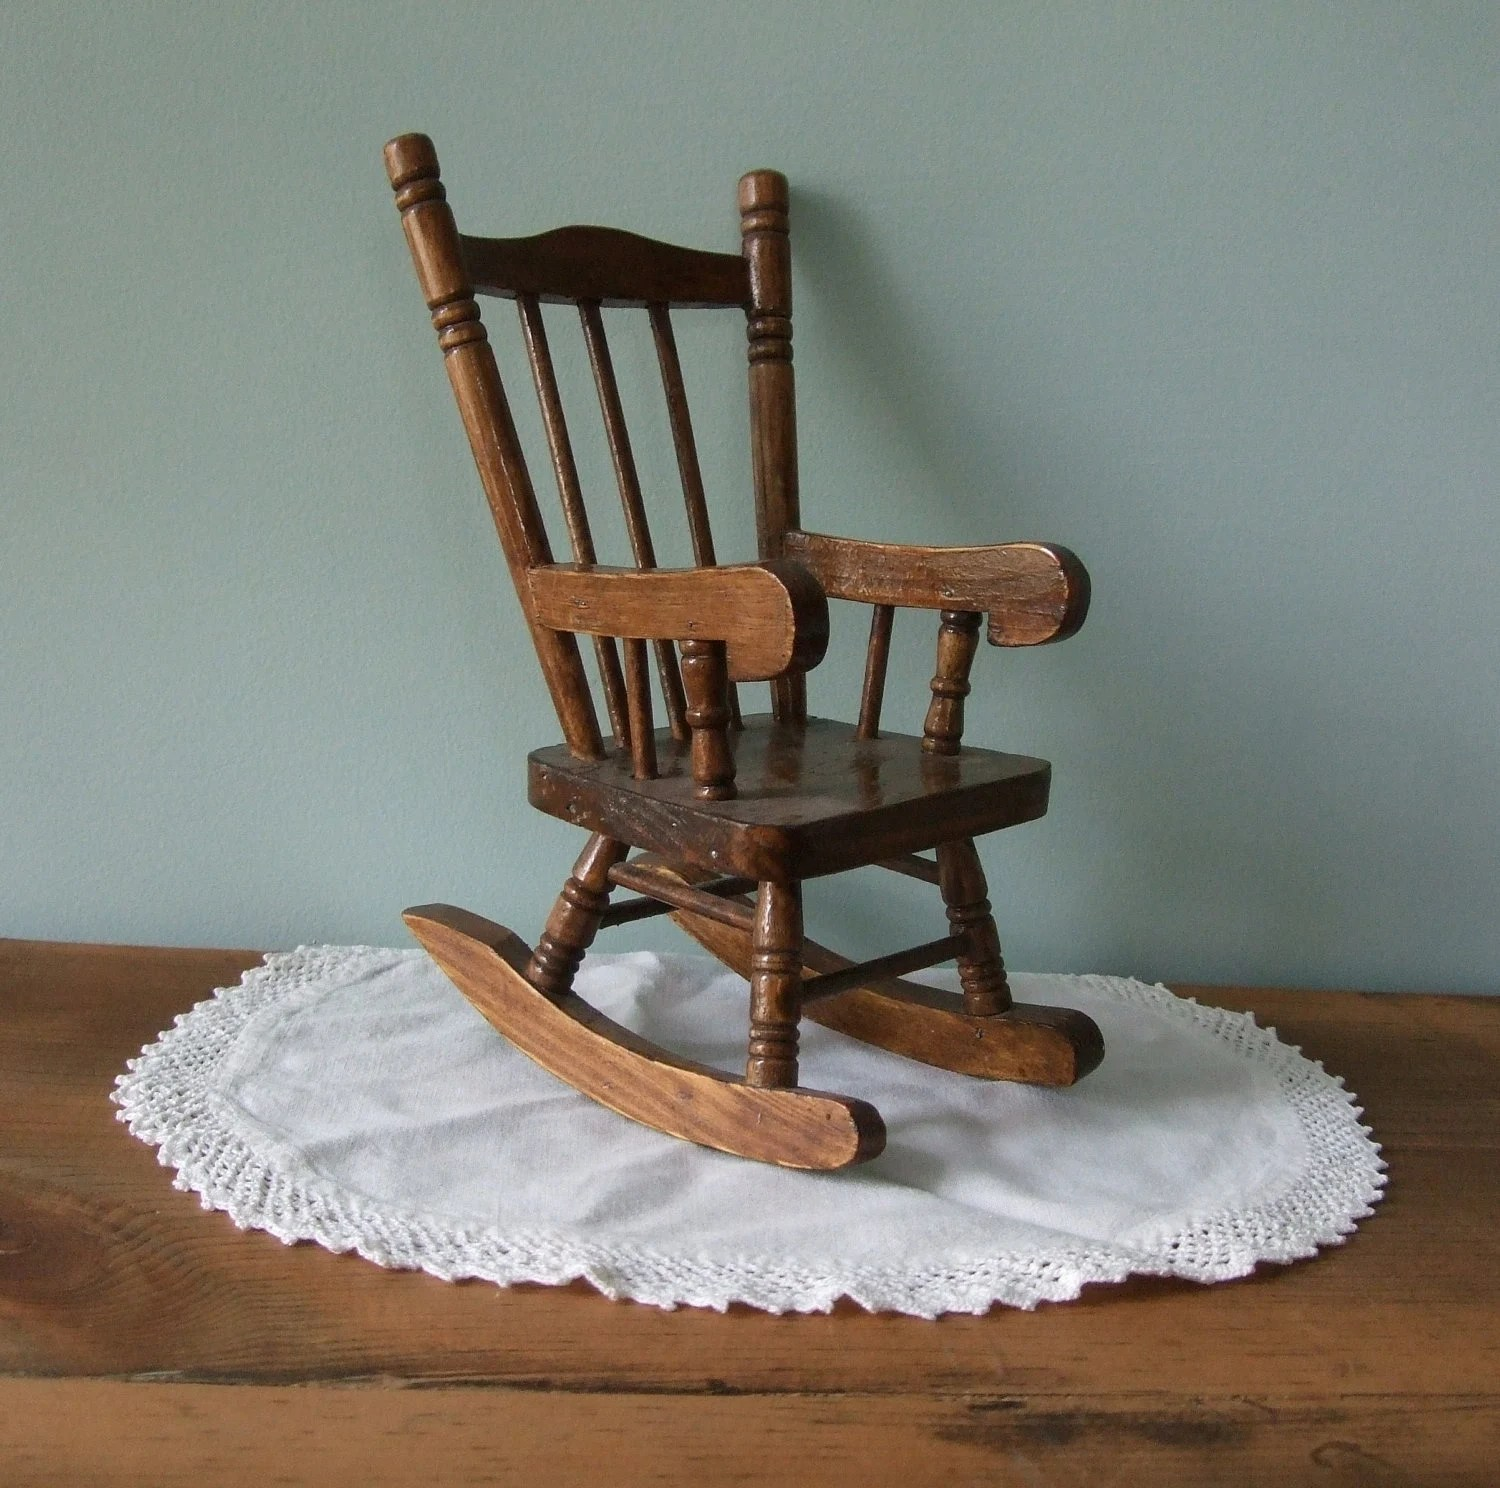 mini rocking chair boon high pink wooden miniature doll house rustic decor